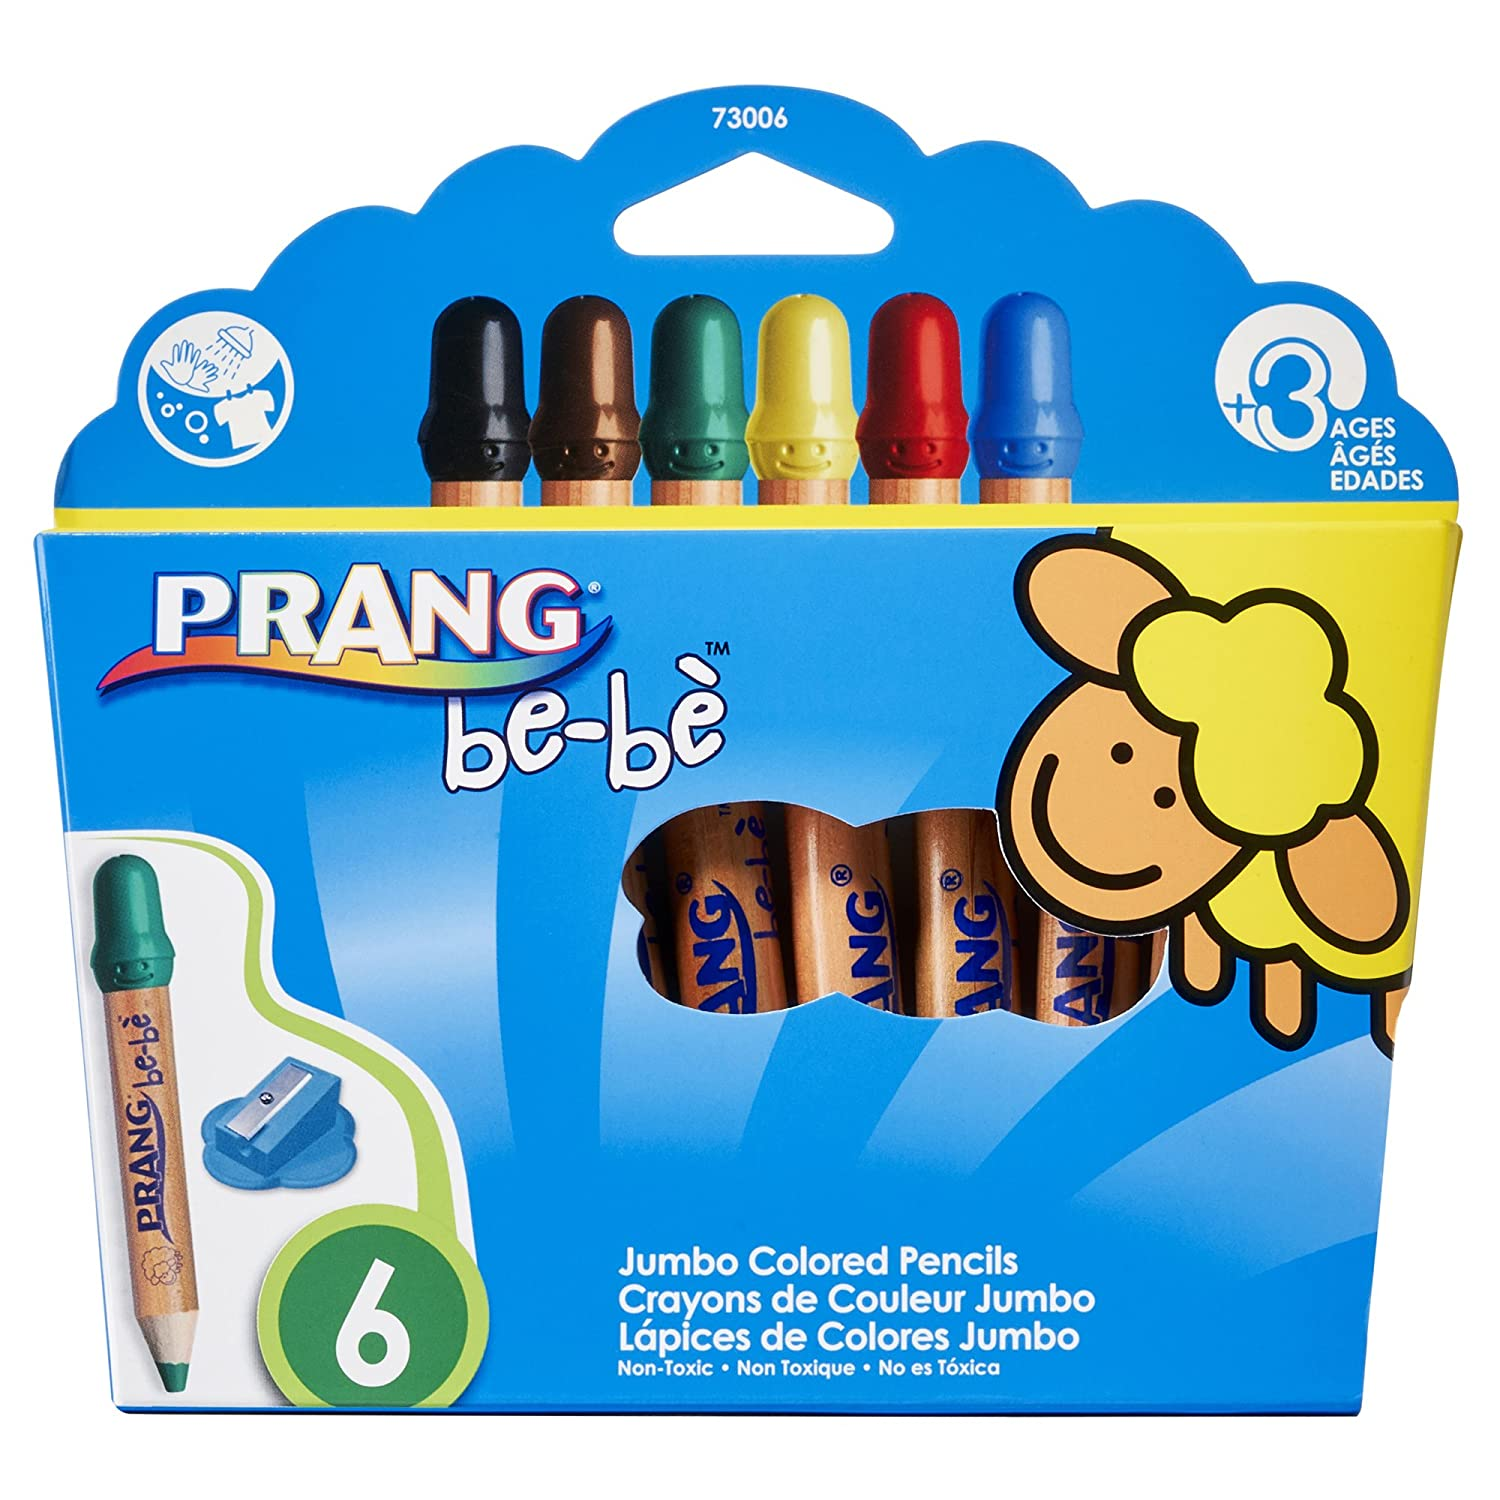 Prang Be-Be Jumbo Washable Colored Pencils with Sharpener, 6-Color Set (73006)